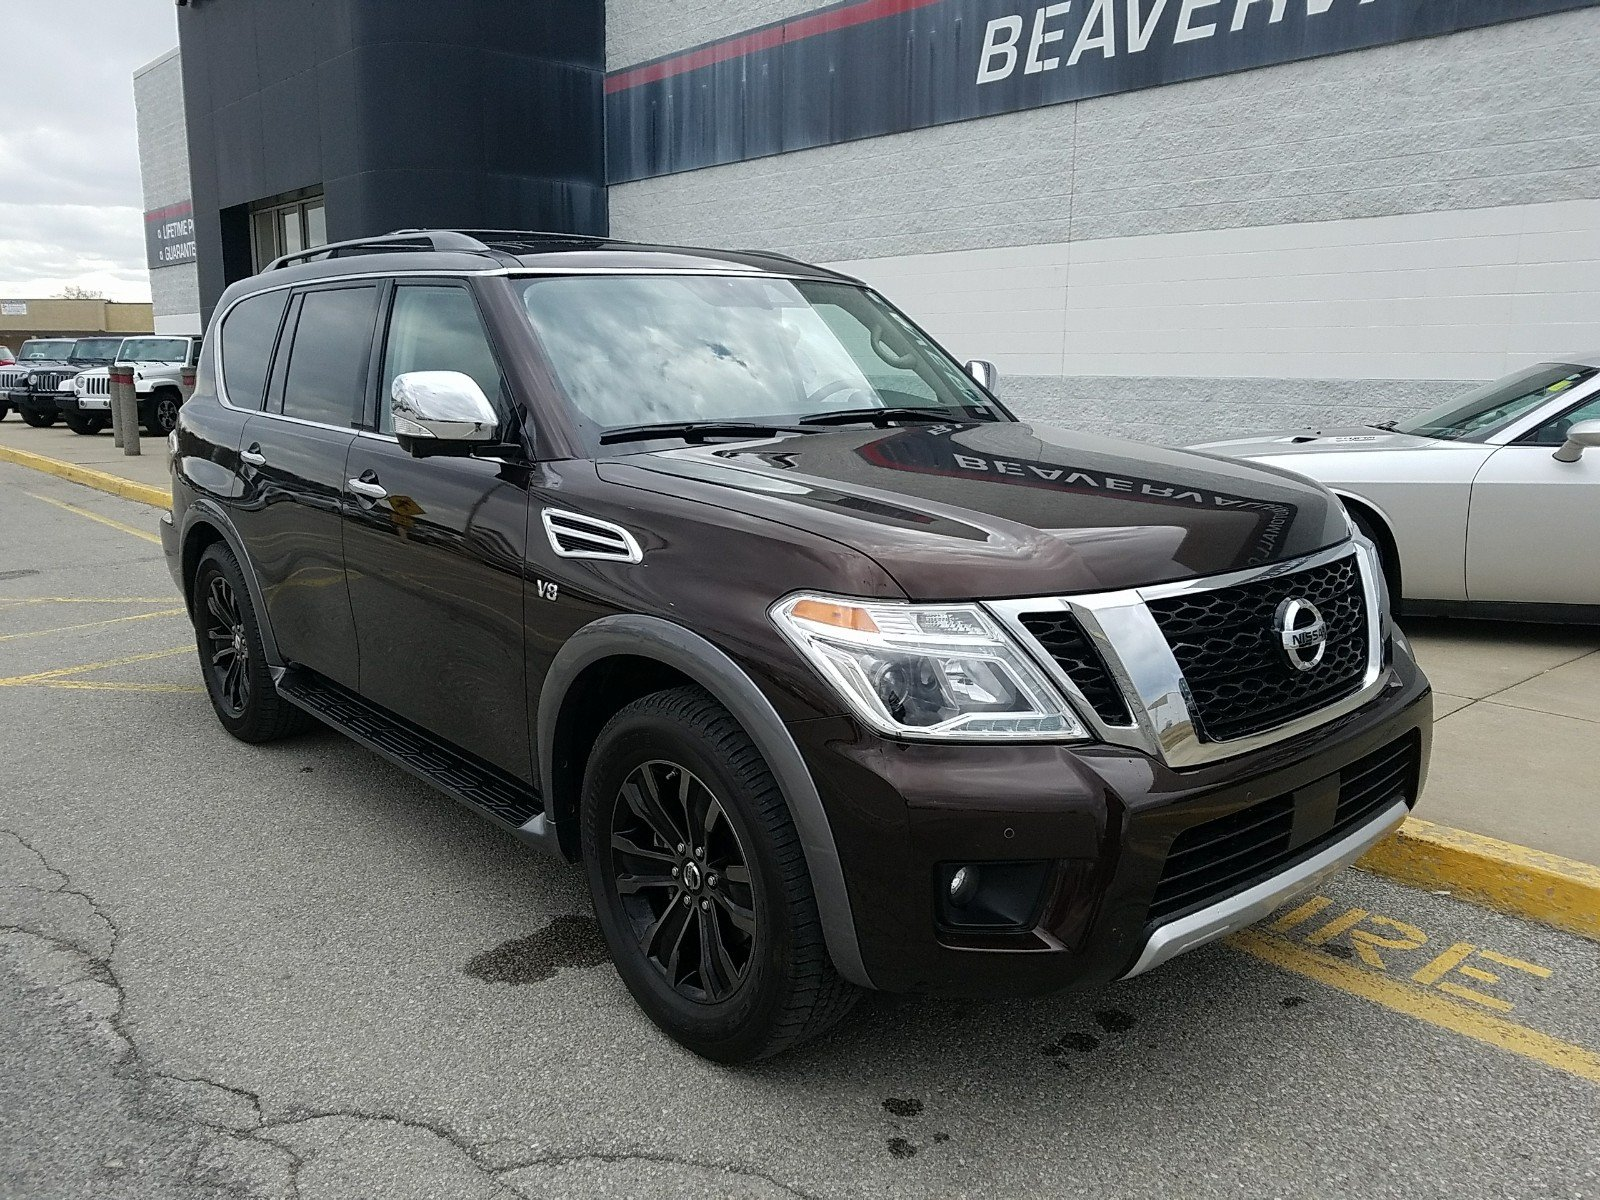 Used 2018 Nissan Armada For Sale at Beaver Valley Automall